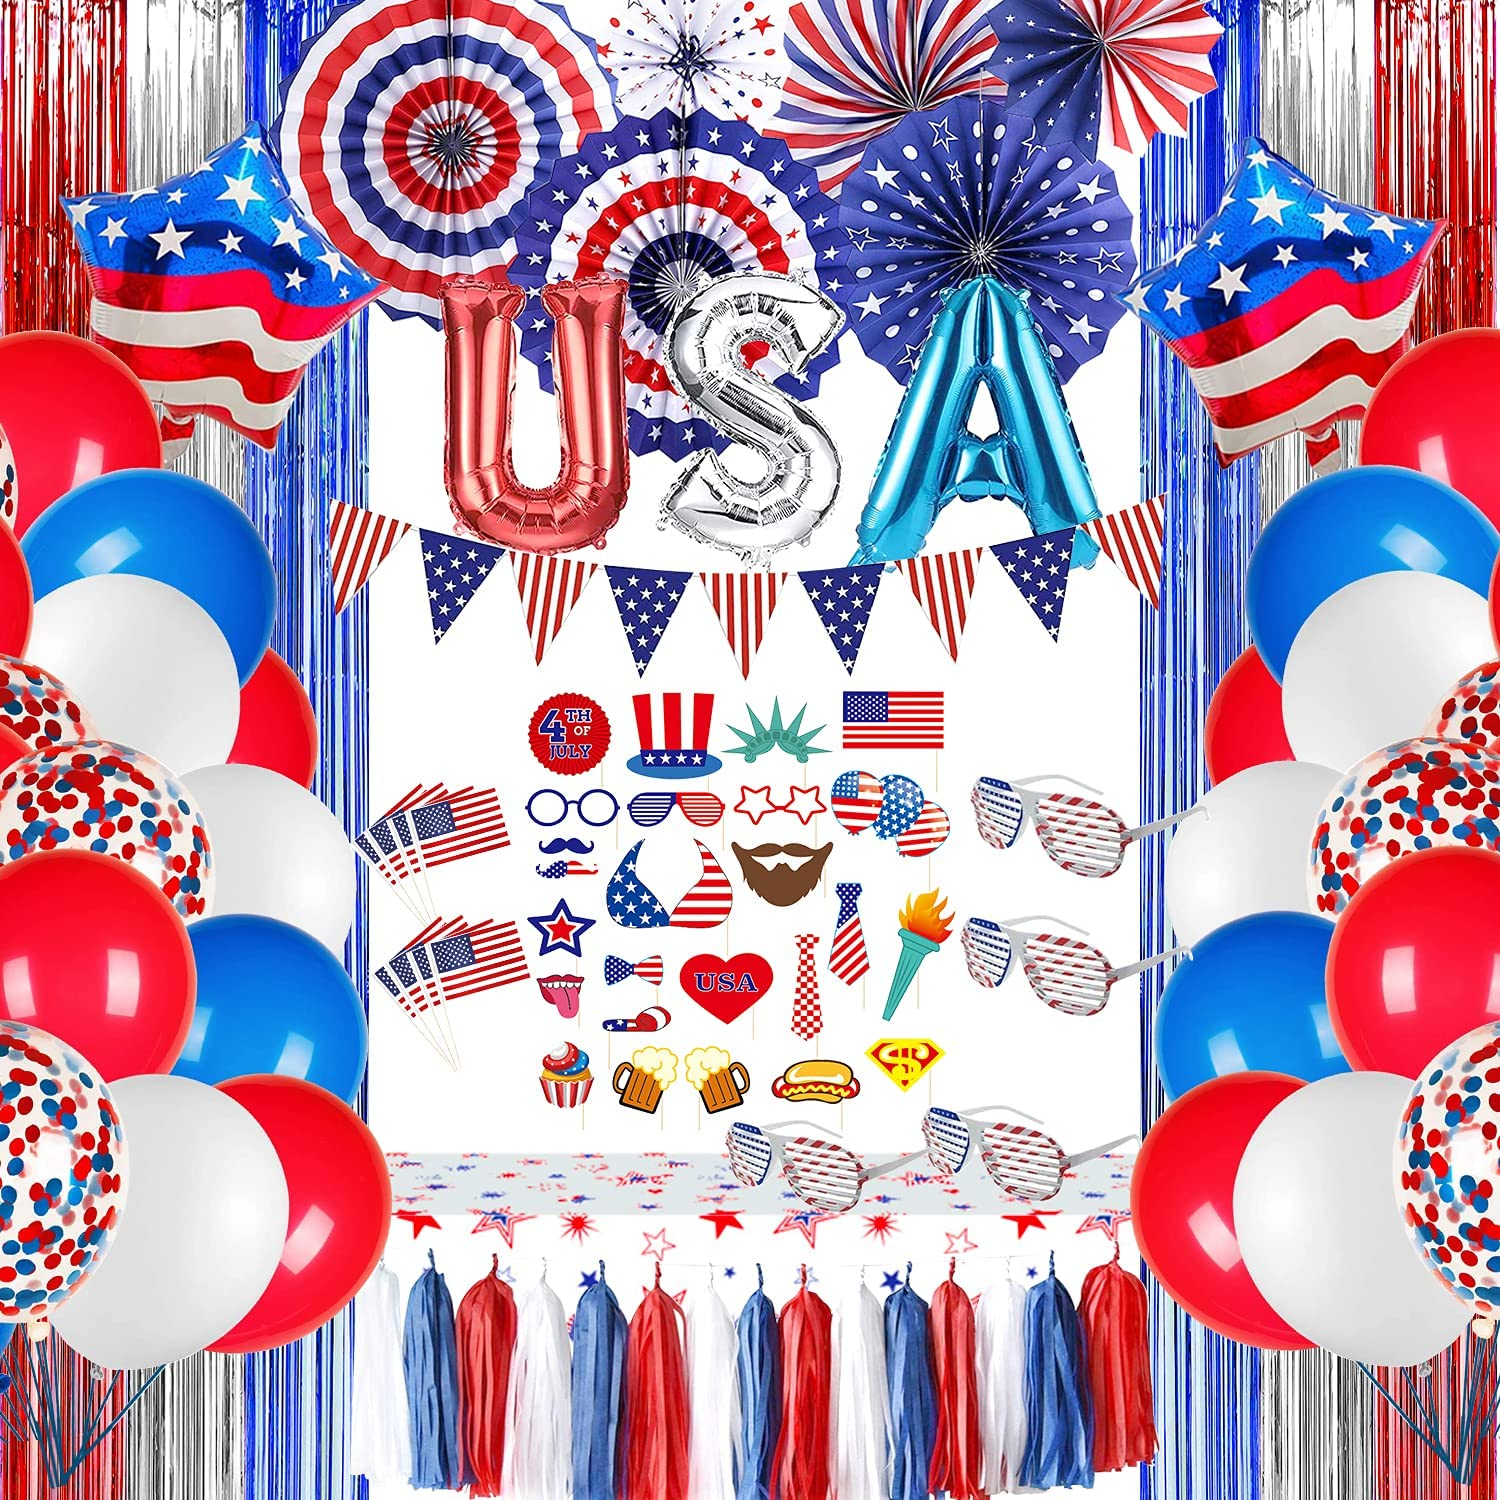 Patriotic Decorations - American Flag Decorations Include Banner, Curtain, Sunglass, Paper Fans, Tassels, Tablecloth, Toppers, Photo Booth Props, Balloons, for Presidents Day, 4th of July Decorations